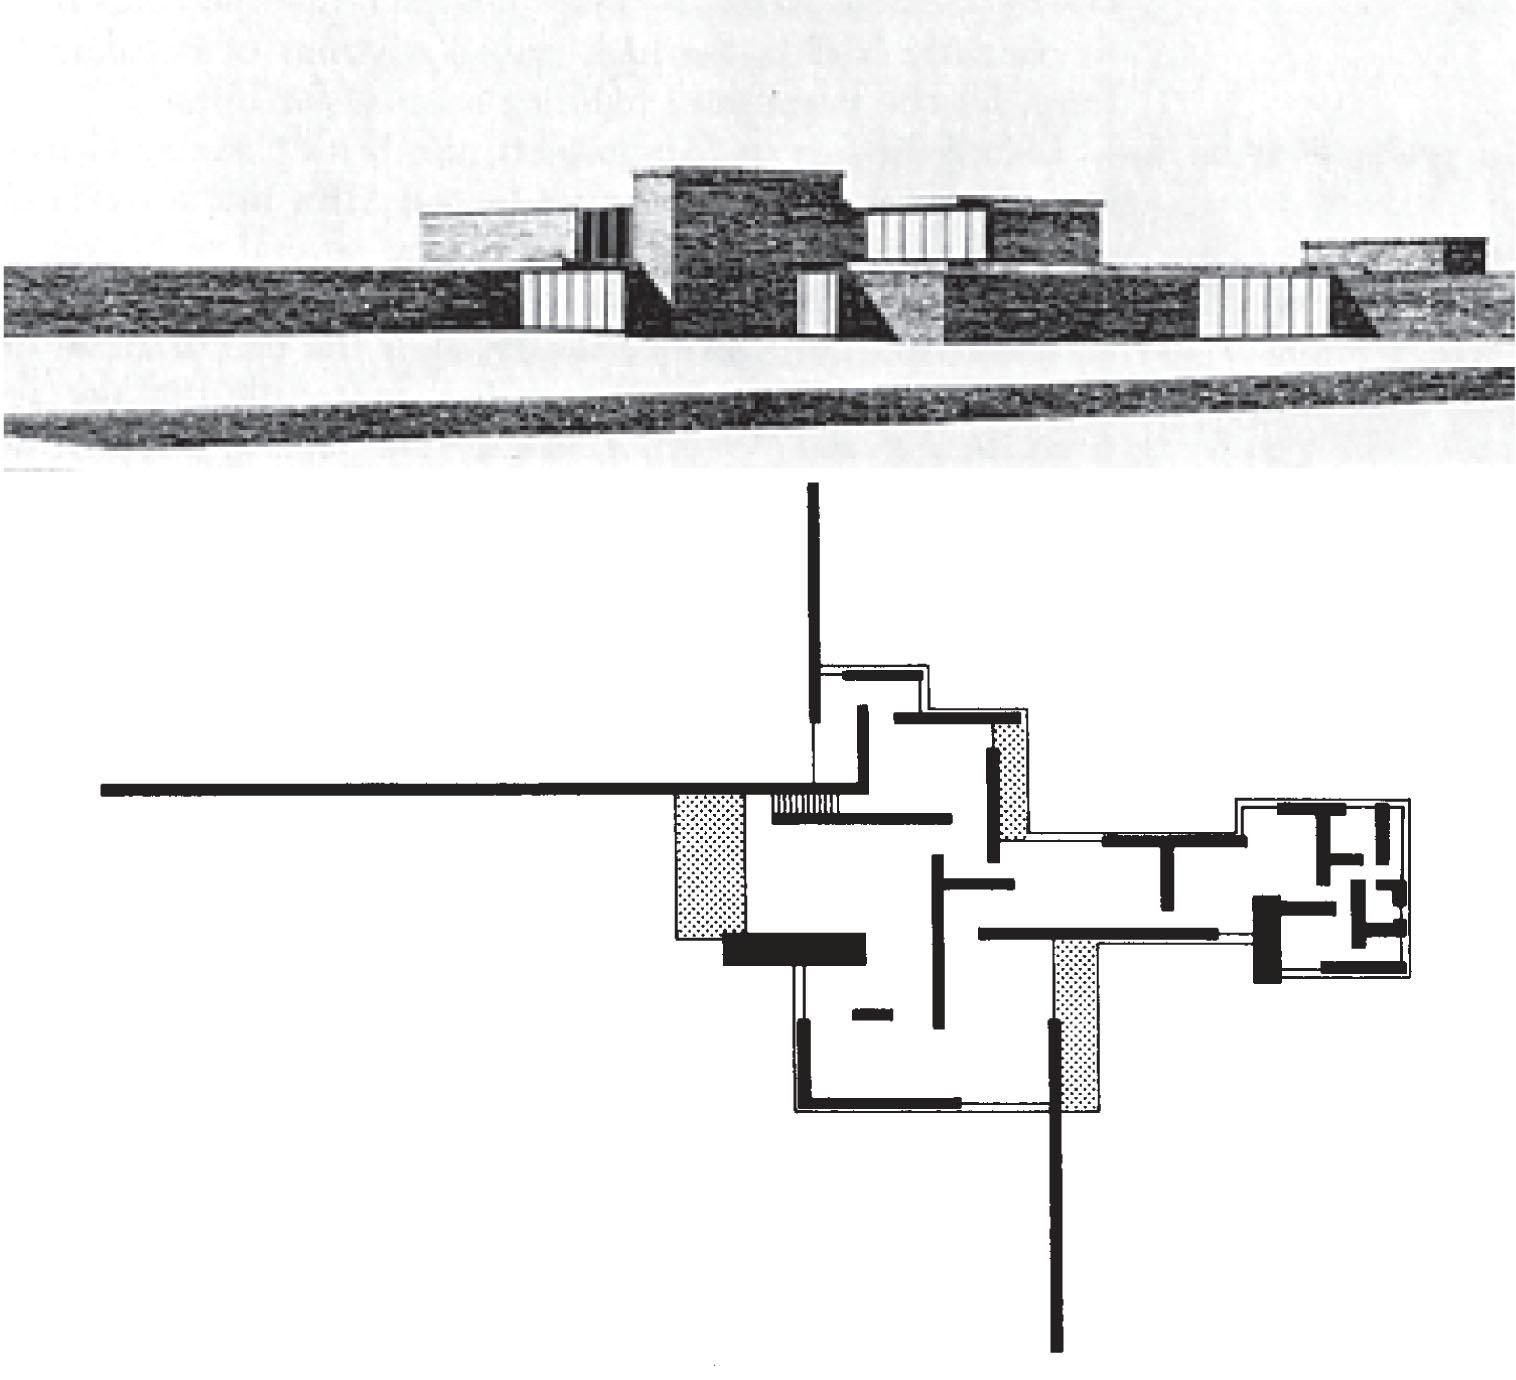 Mies brick house project